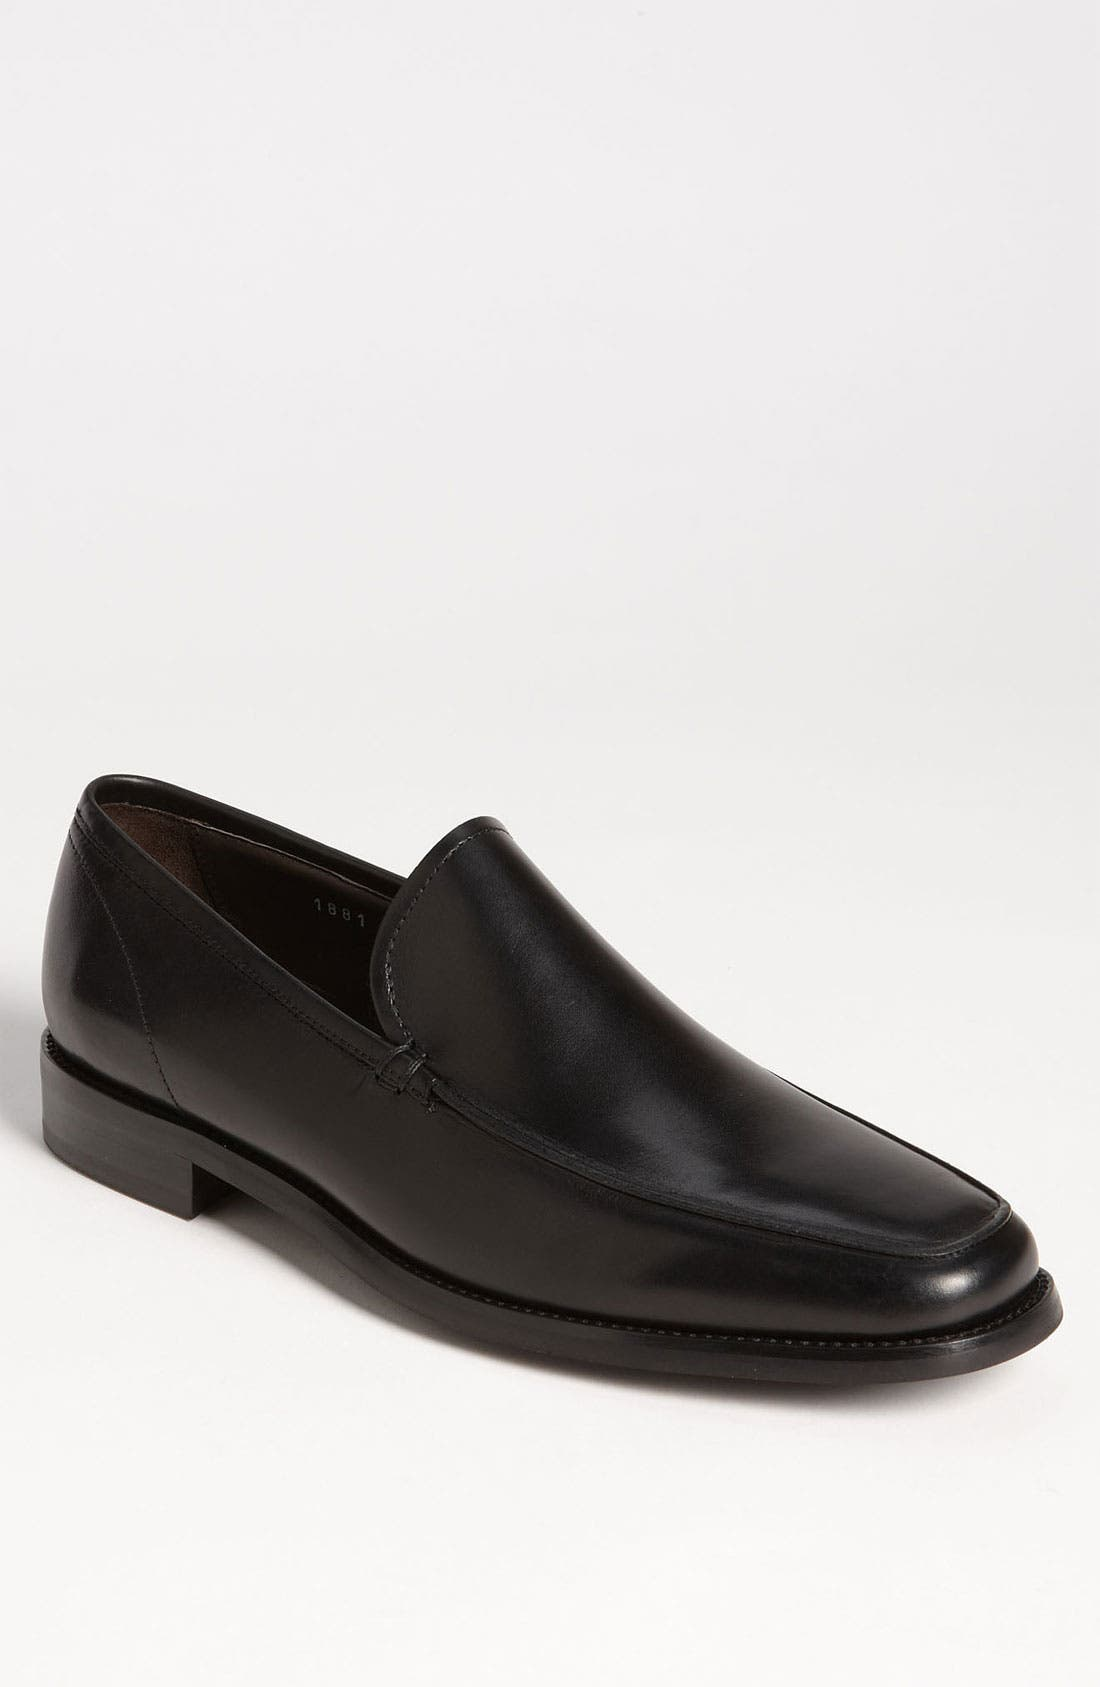 Main Image - To Boot New York 'Franklin' Moc-Toe Loafer